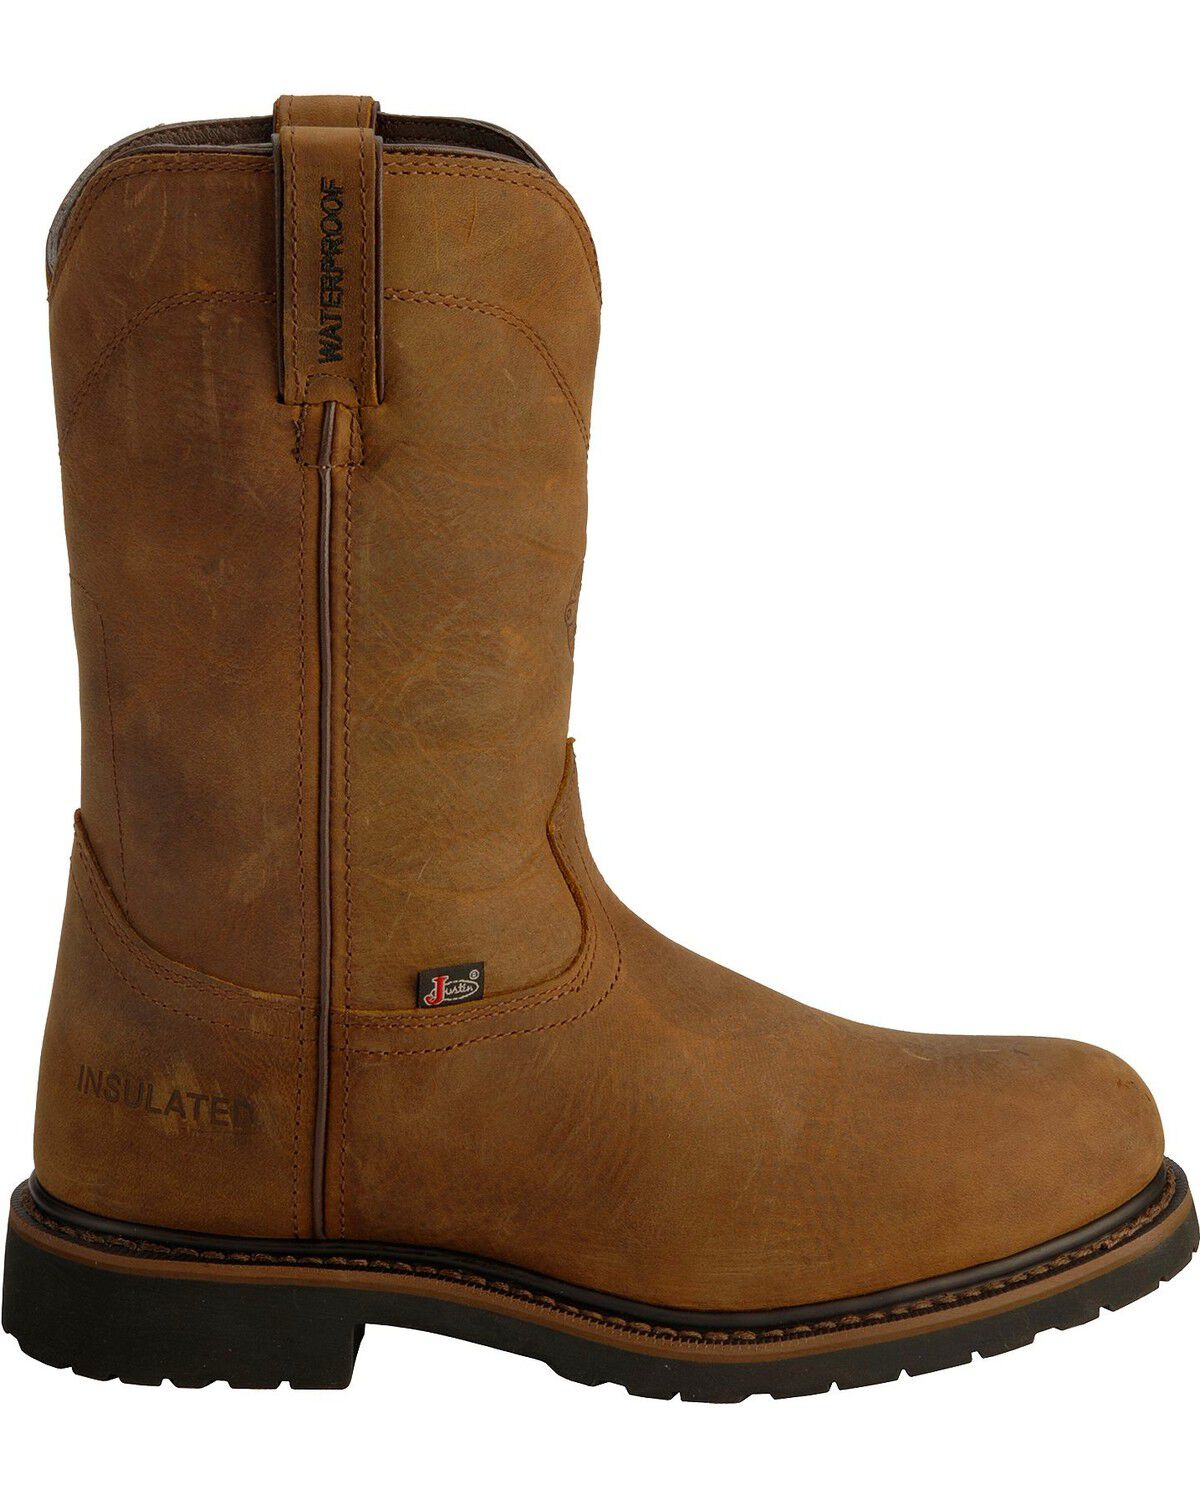 Justin Men's Wyoming Insulated